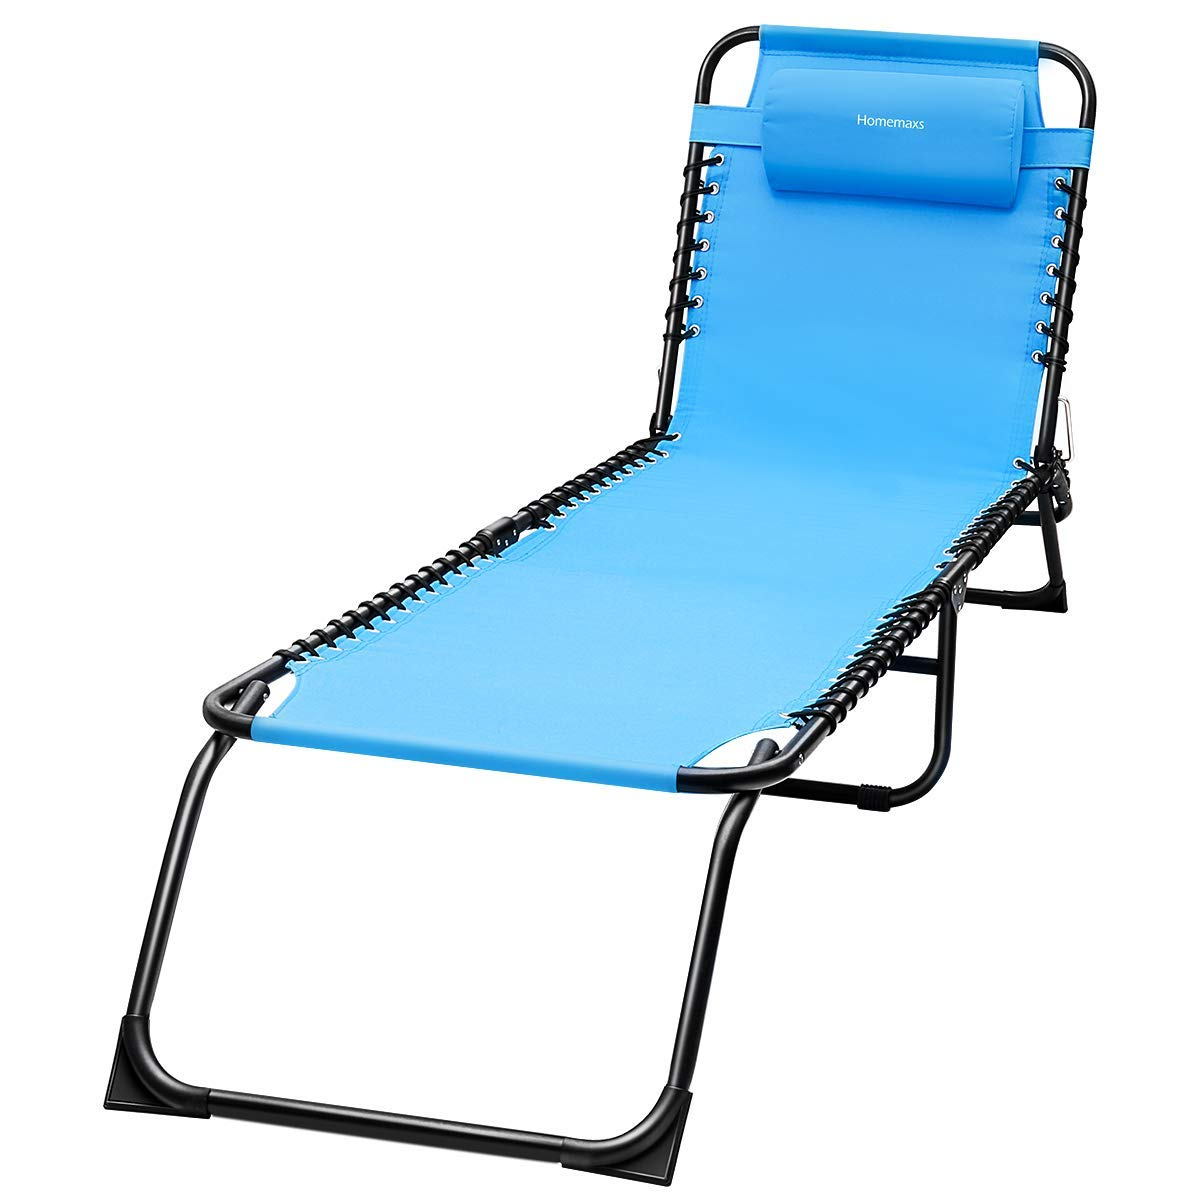 Patio Furniture For Over 300 Lbs.Cheap Heavy Duty Folding Lawn Chair Find Heavy Duty Folding Lawn